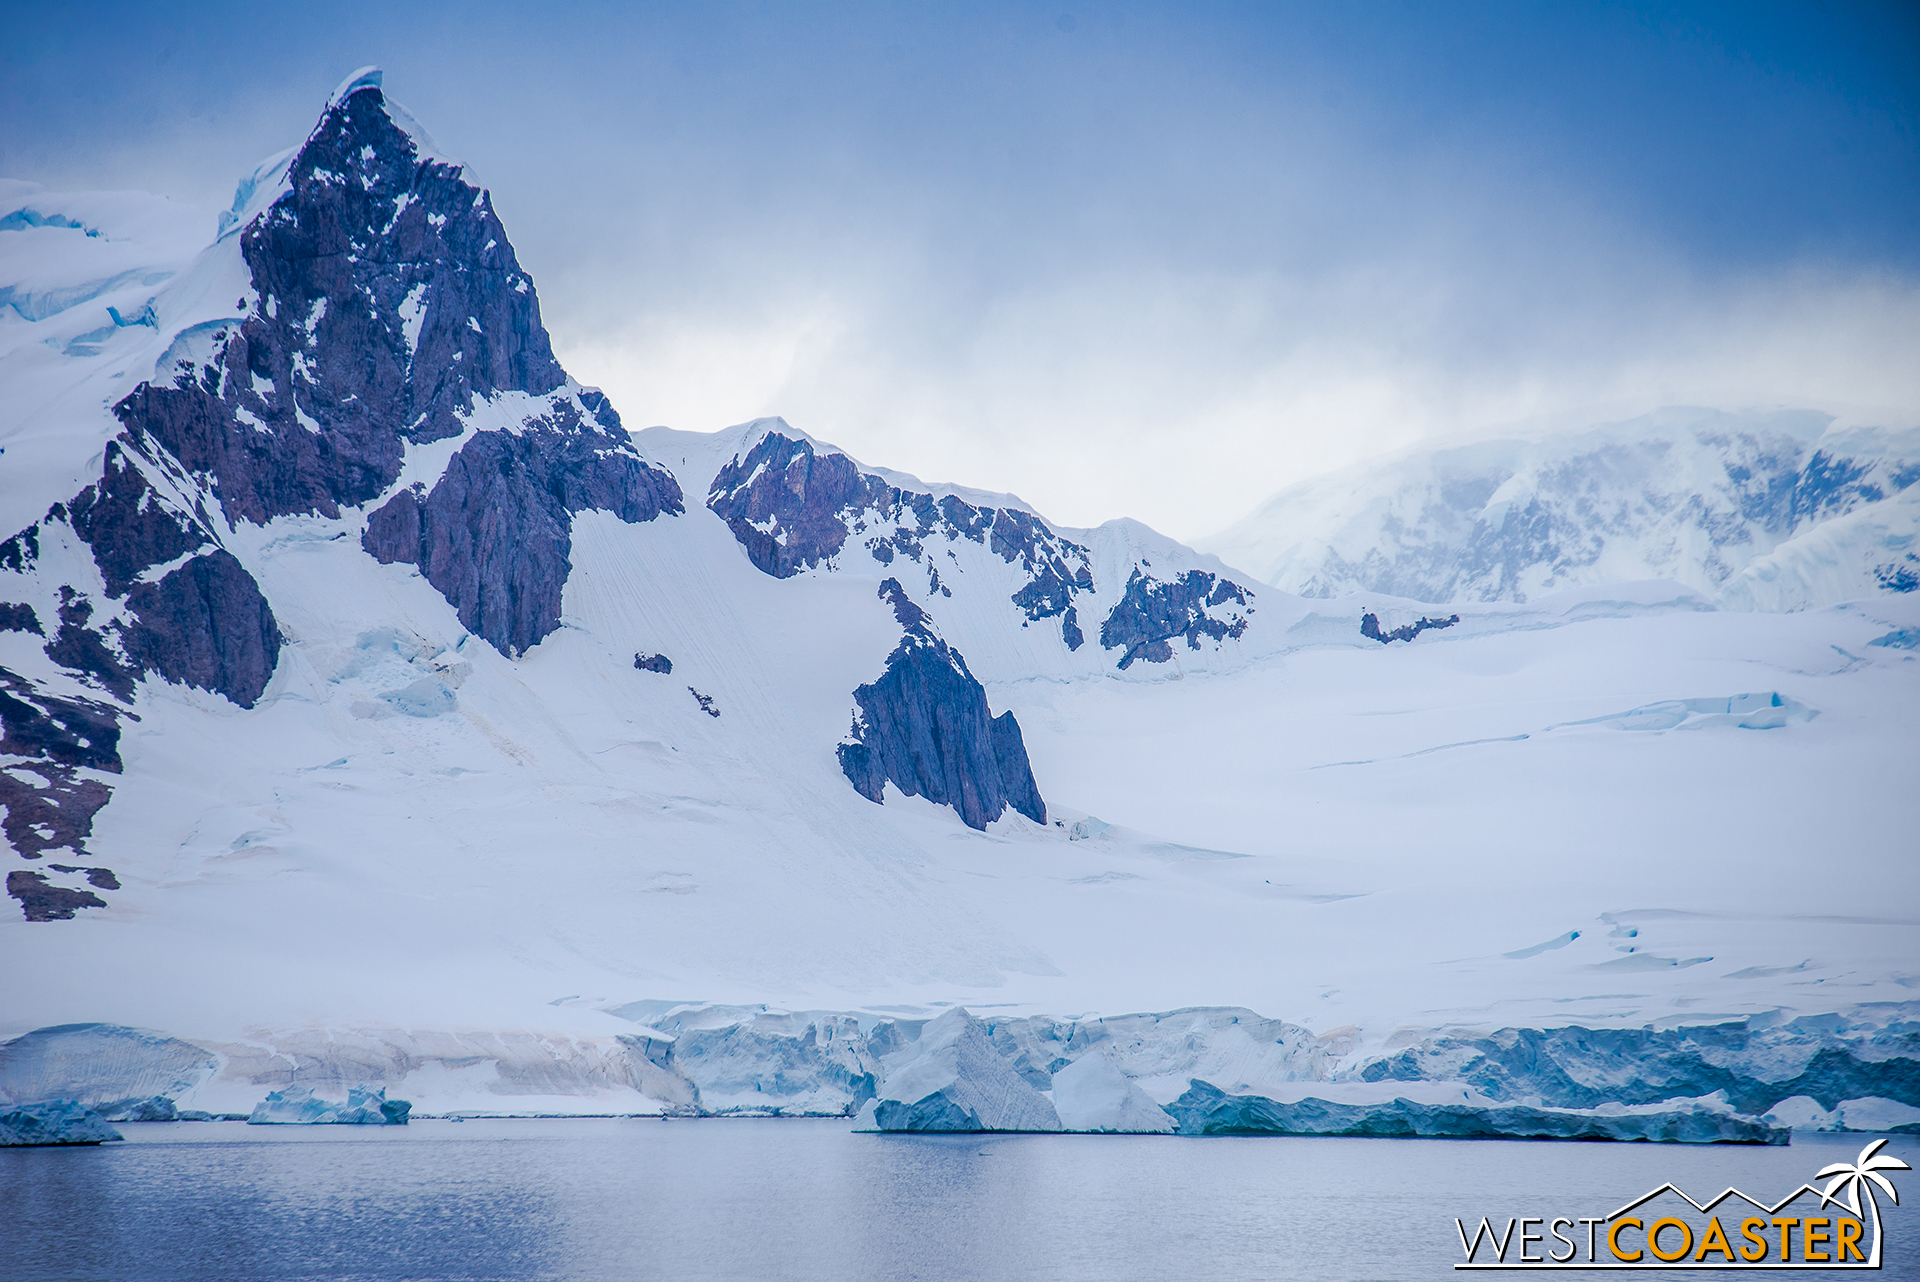 The Antarctic landscape as we head southward from Neko Harbor earlier in the morning.